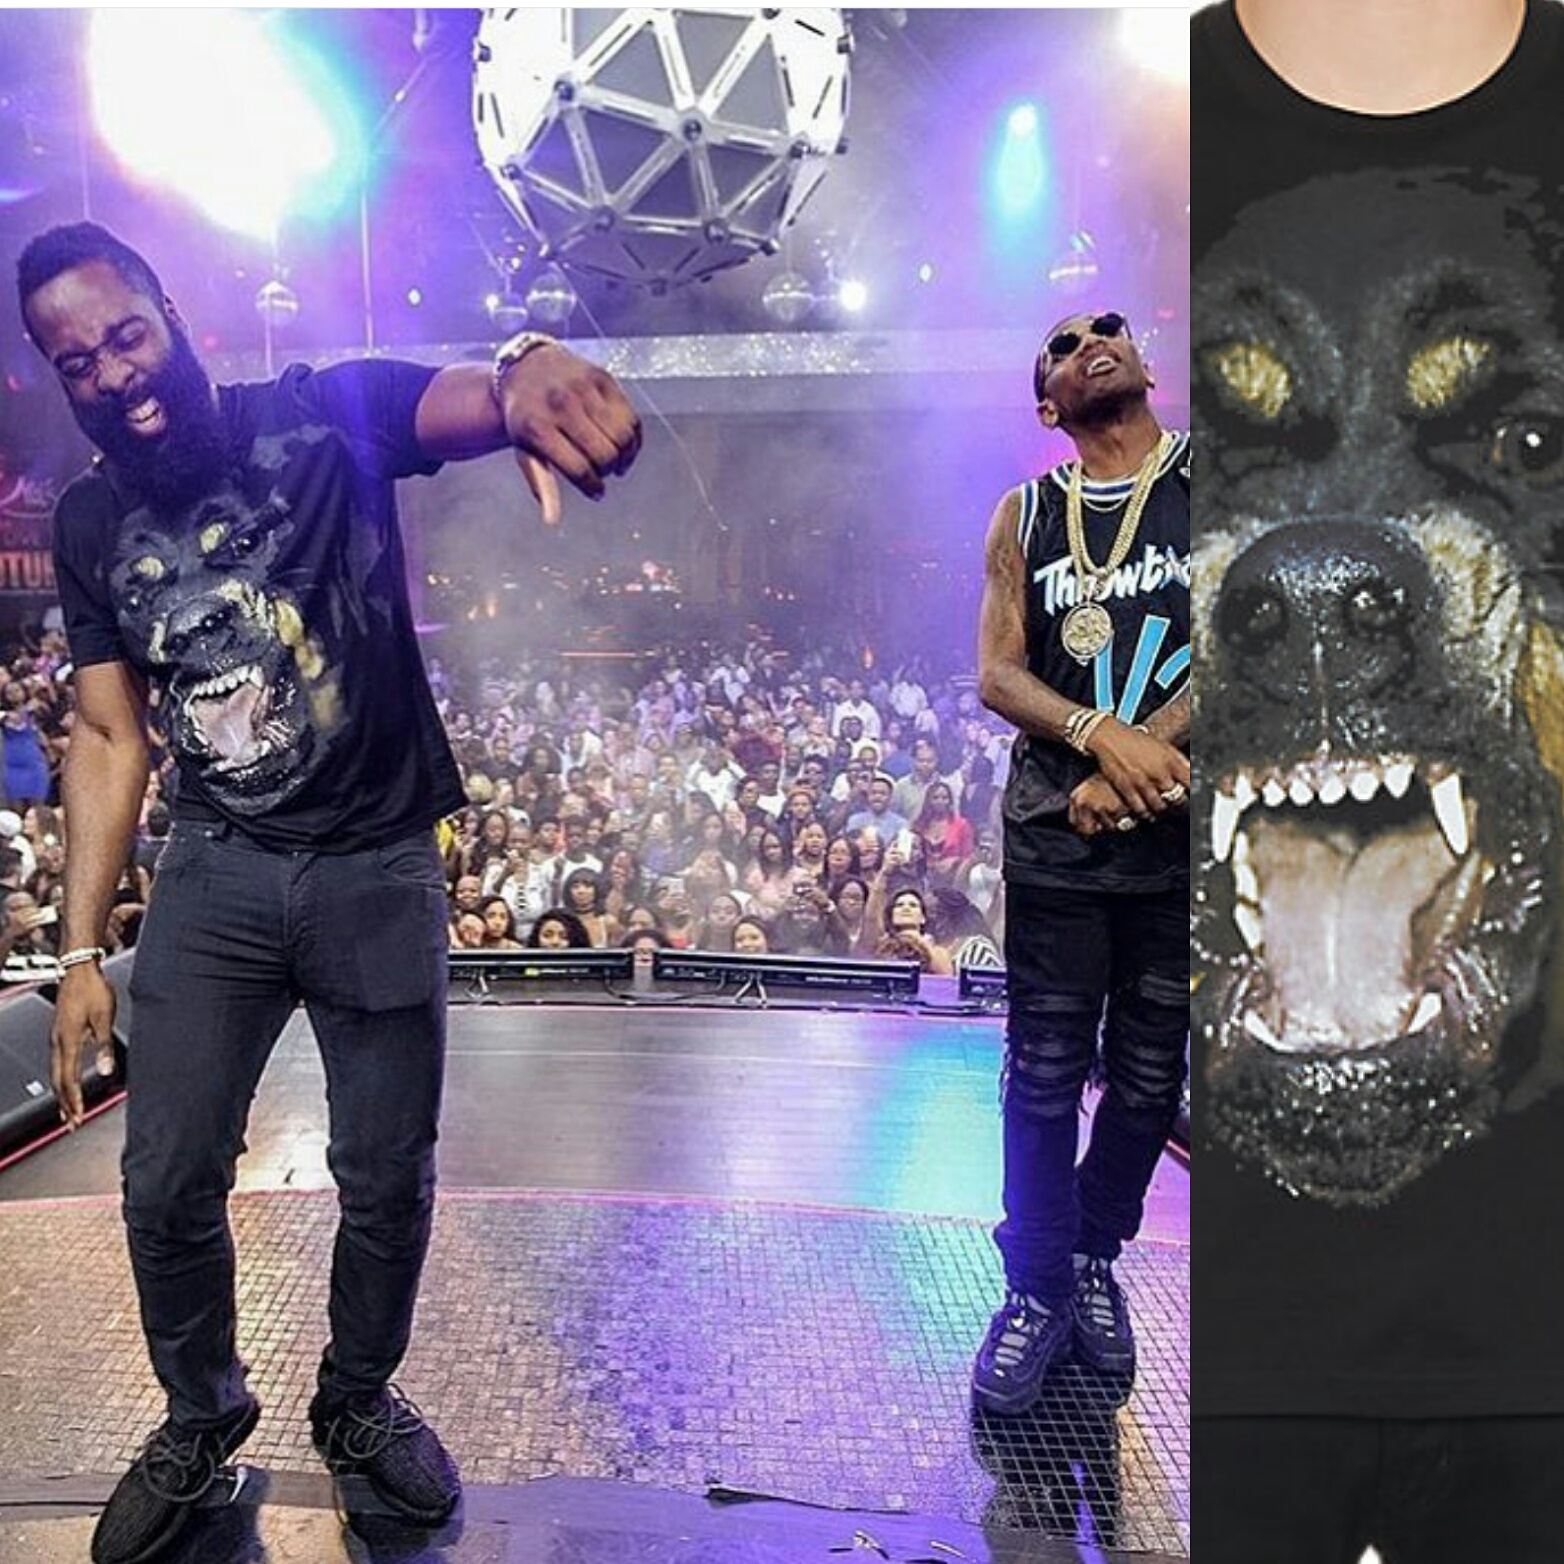 STYLE: NBA James Harden In Las Vegas Wearing Givenchy Rottweiler Tee & Yeezy 350 Boost Sneakers